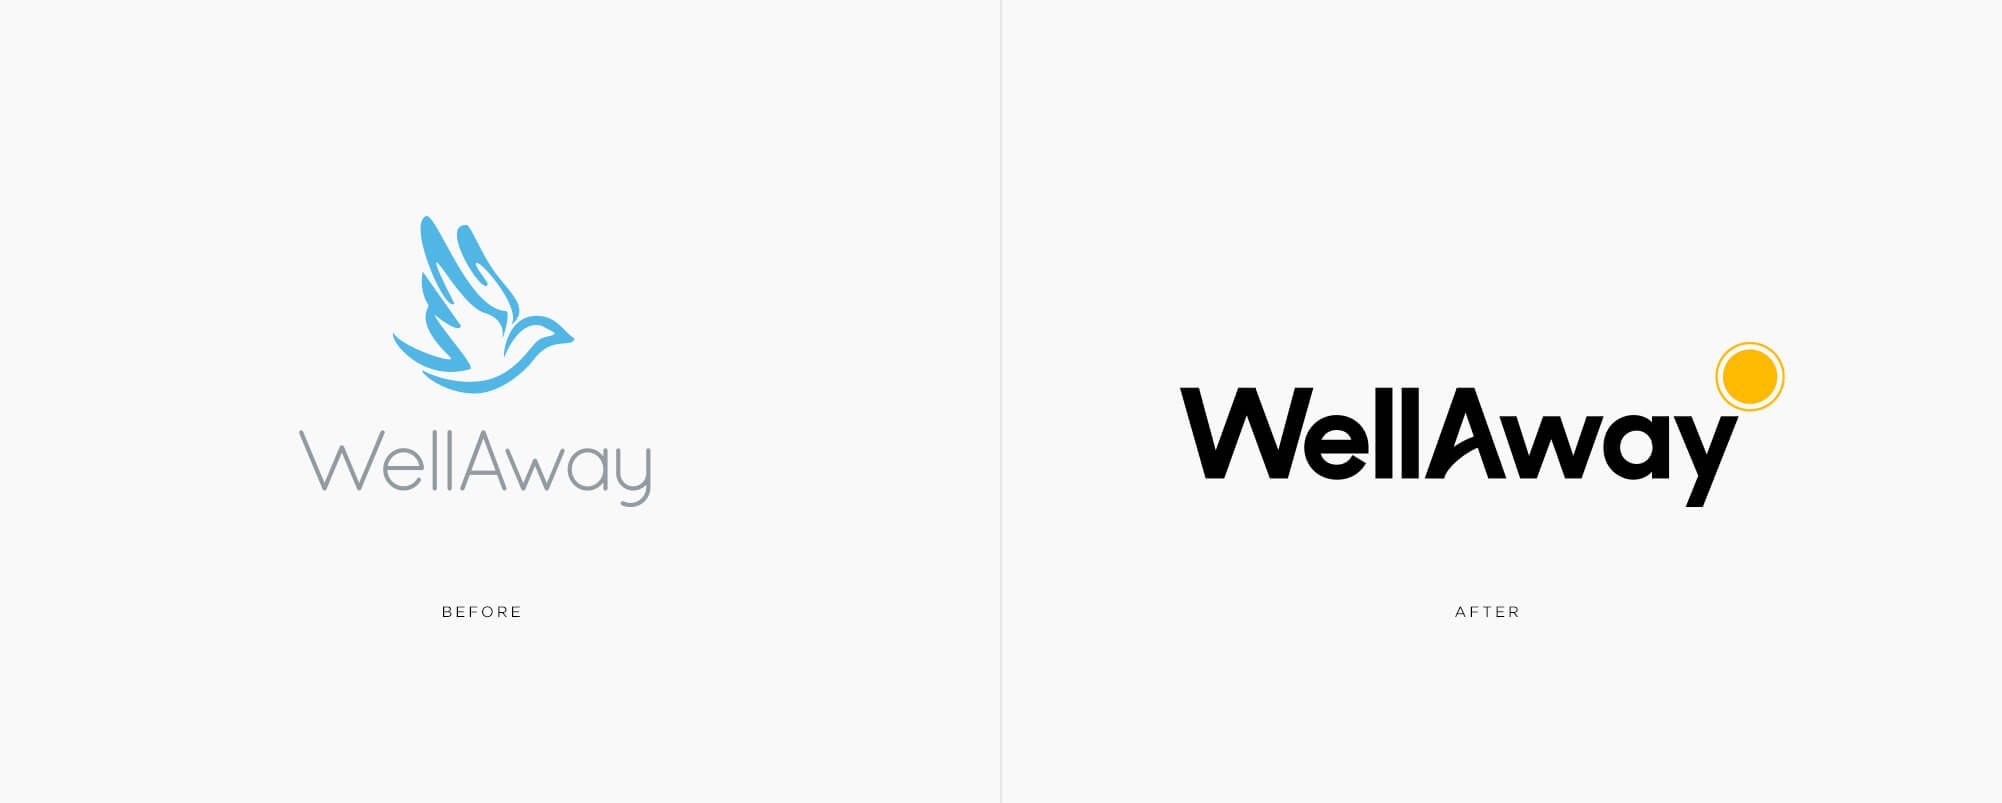 Jacober rebranding of WellAway Global Health Insurance, Image before and after of Wellaway logo